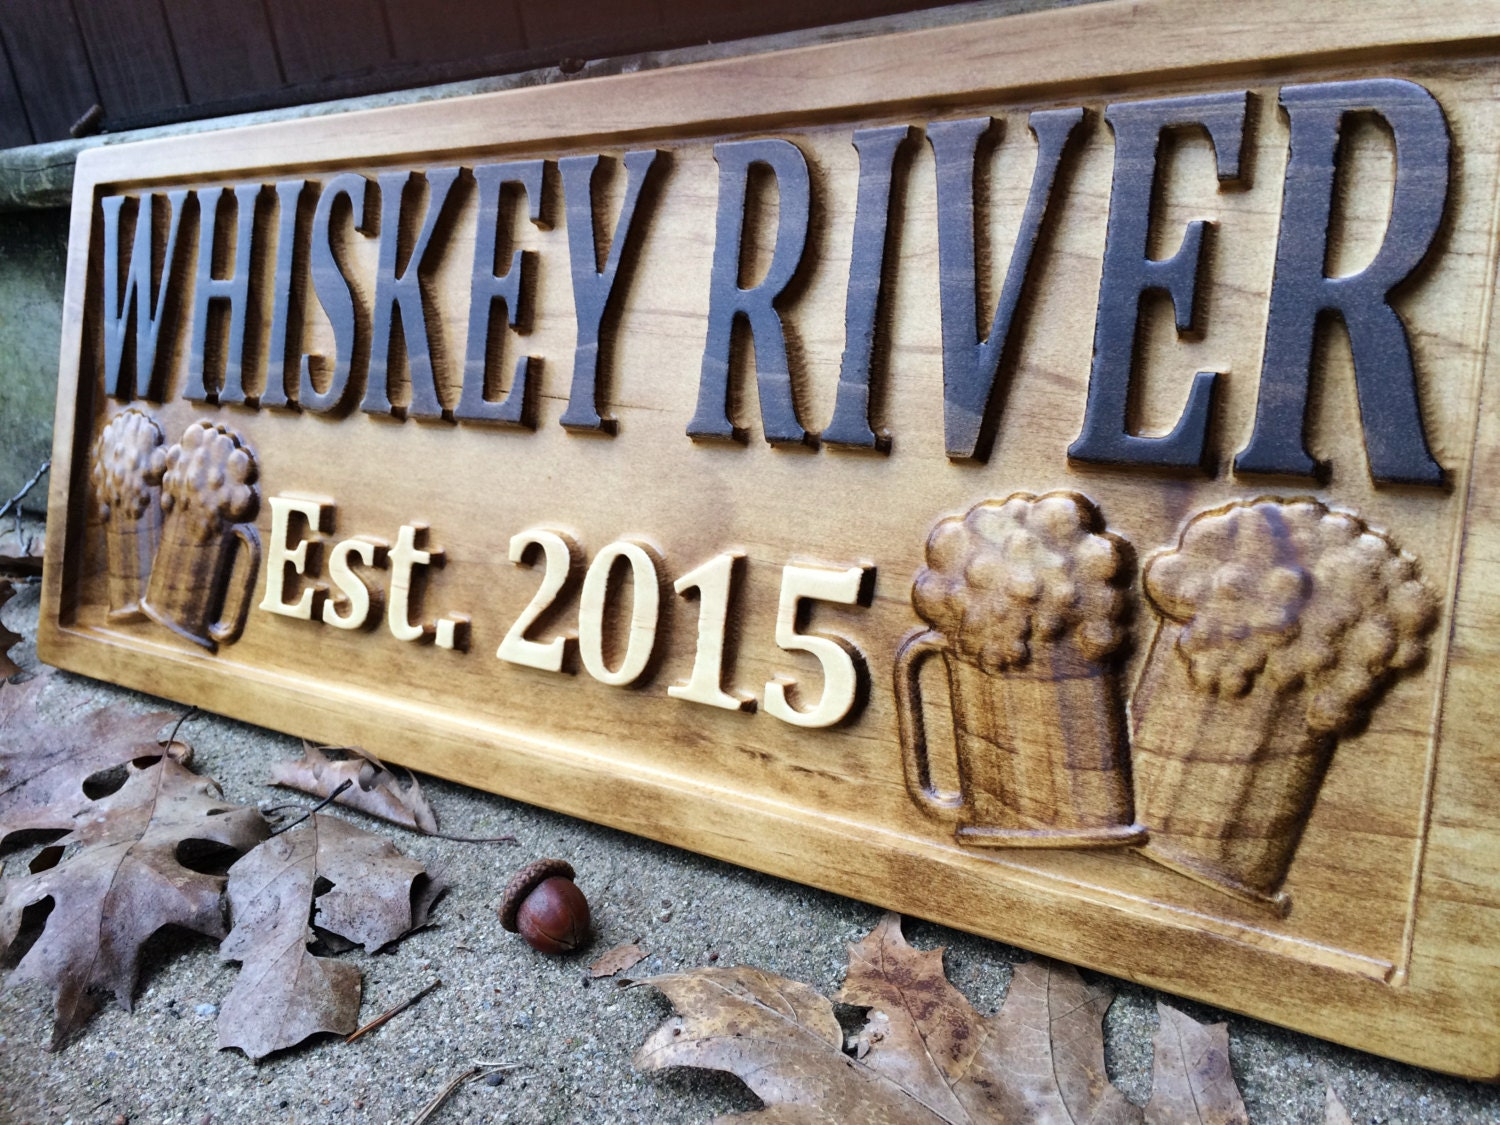 Personalized Man Cave Signs Etsy : Personalized man cave sign custom bar signs wood groomsmen